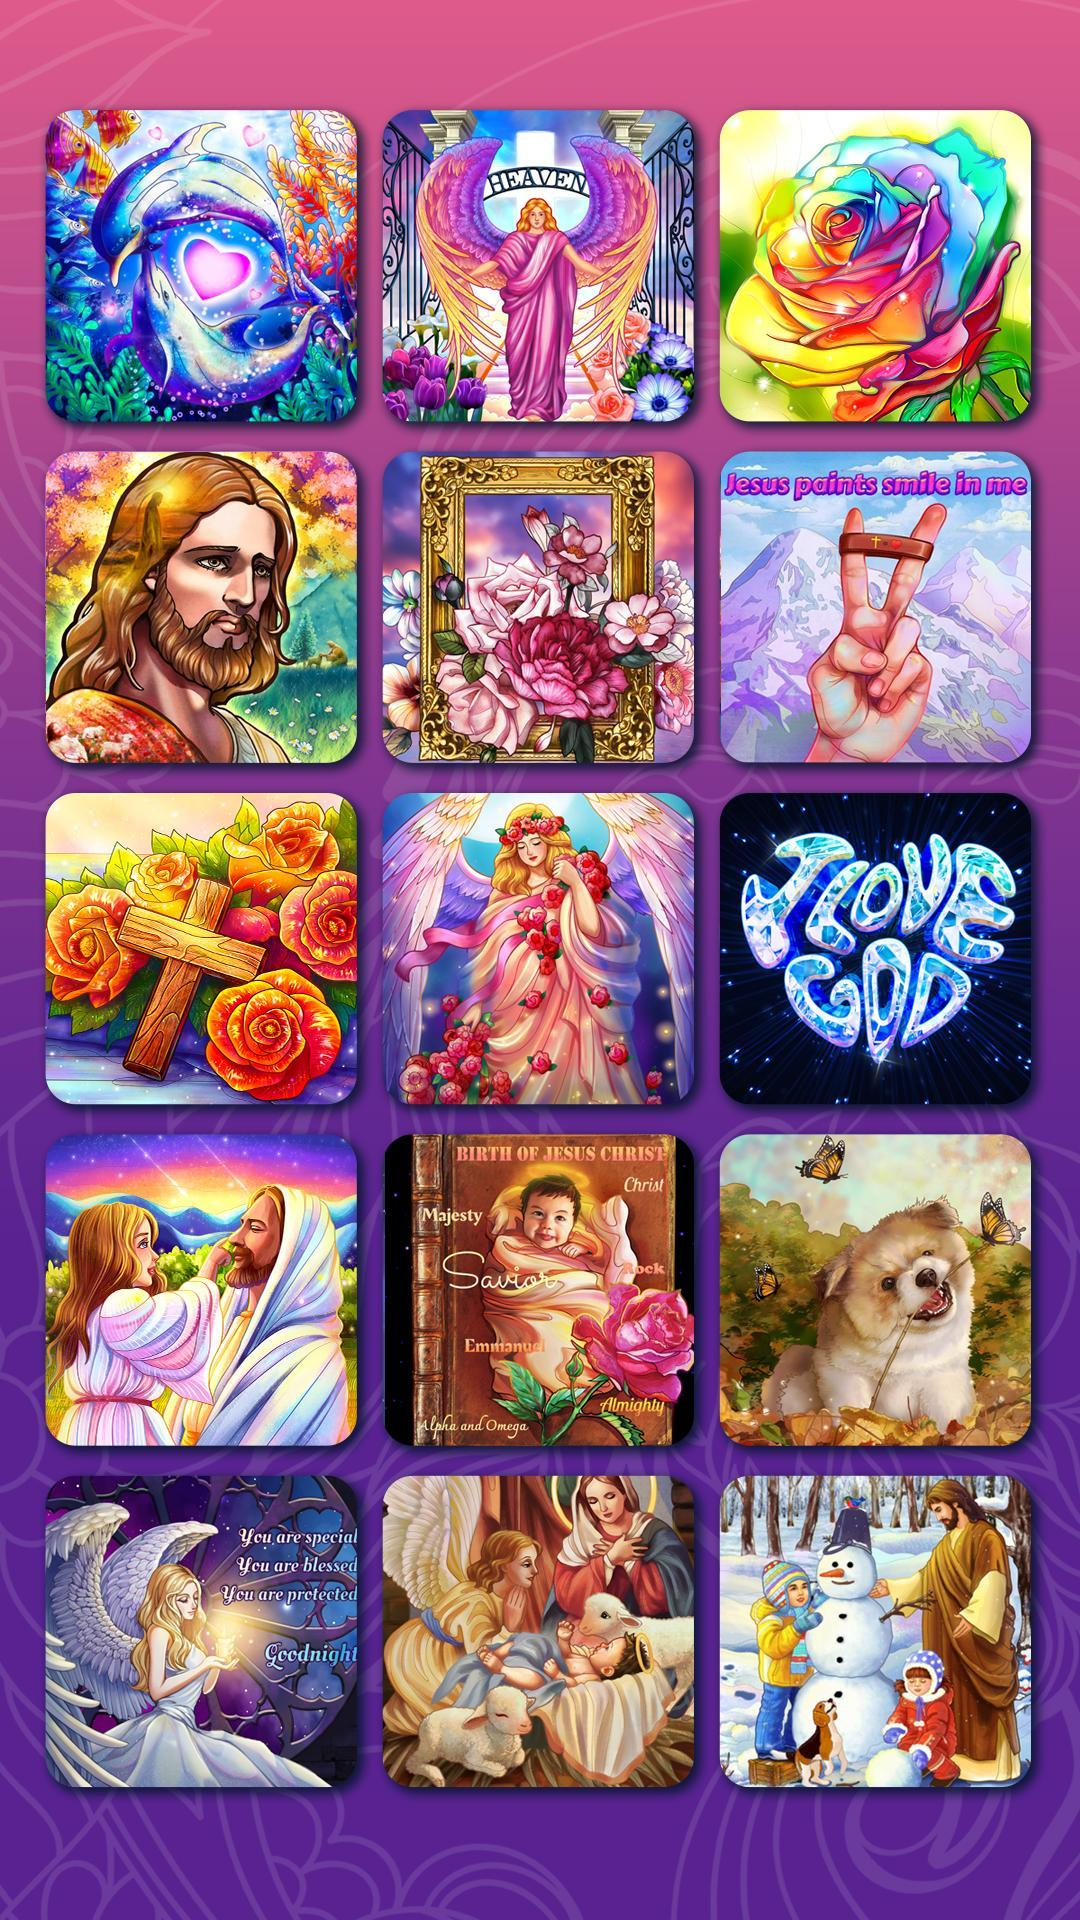 Bible Coloring Paint by Number, Free Bible Games 2.1.14 Screenshot 8